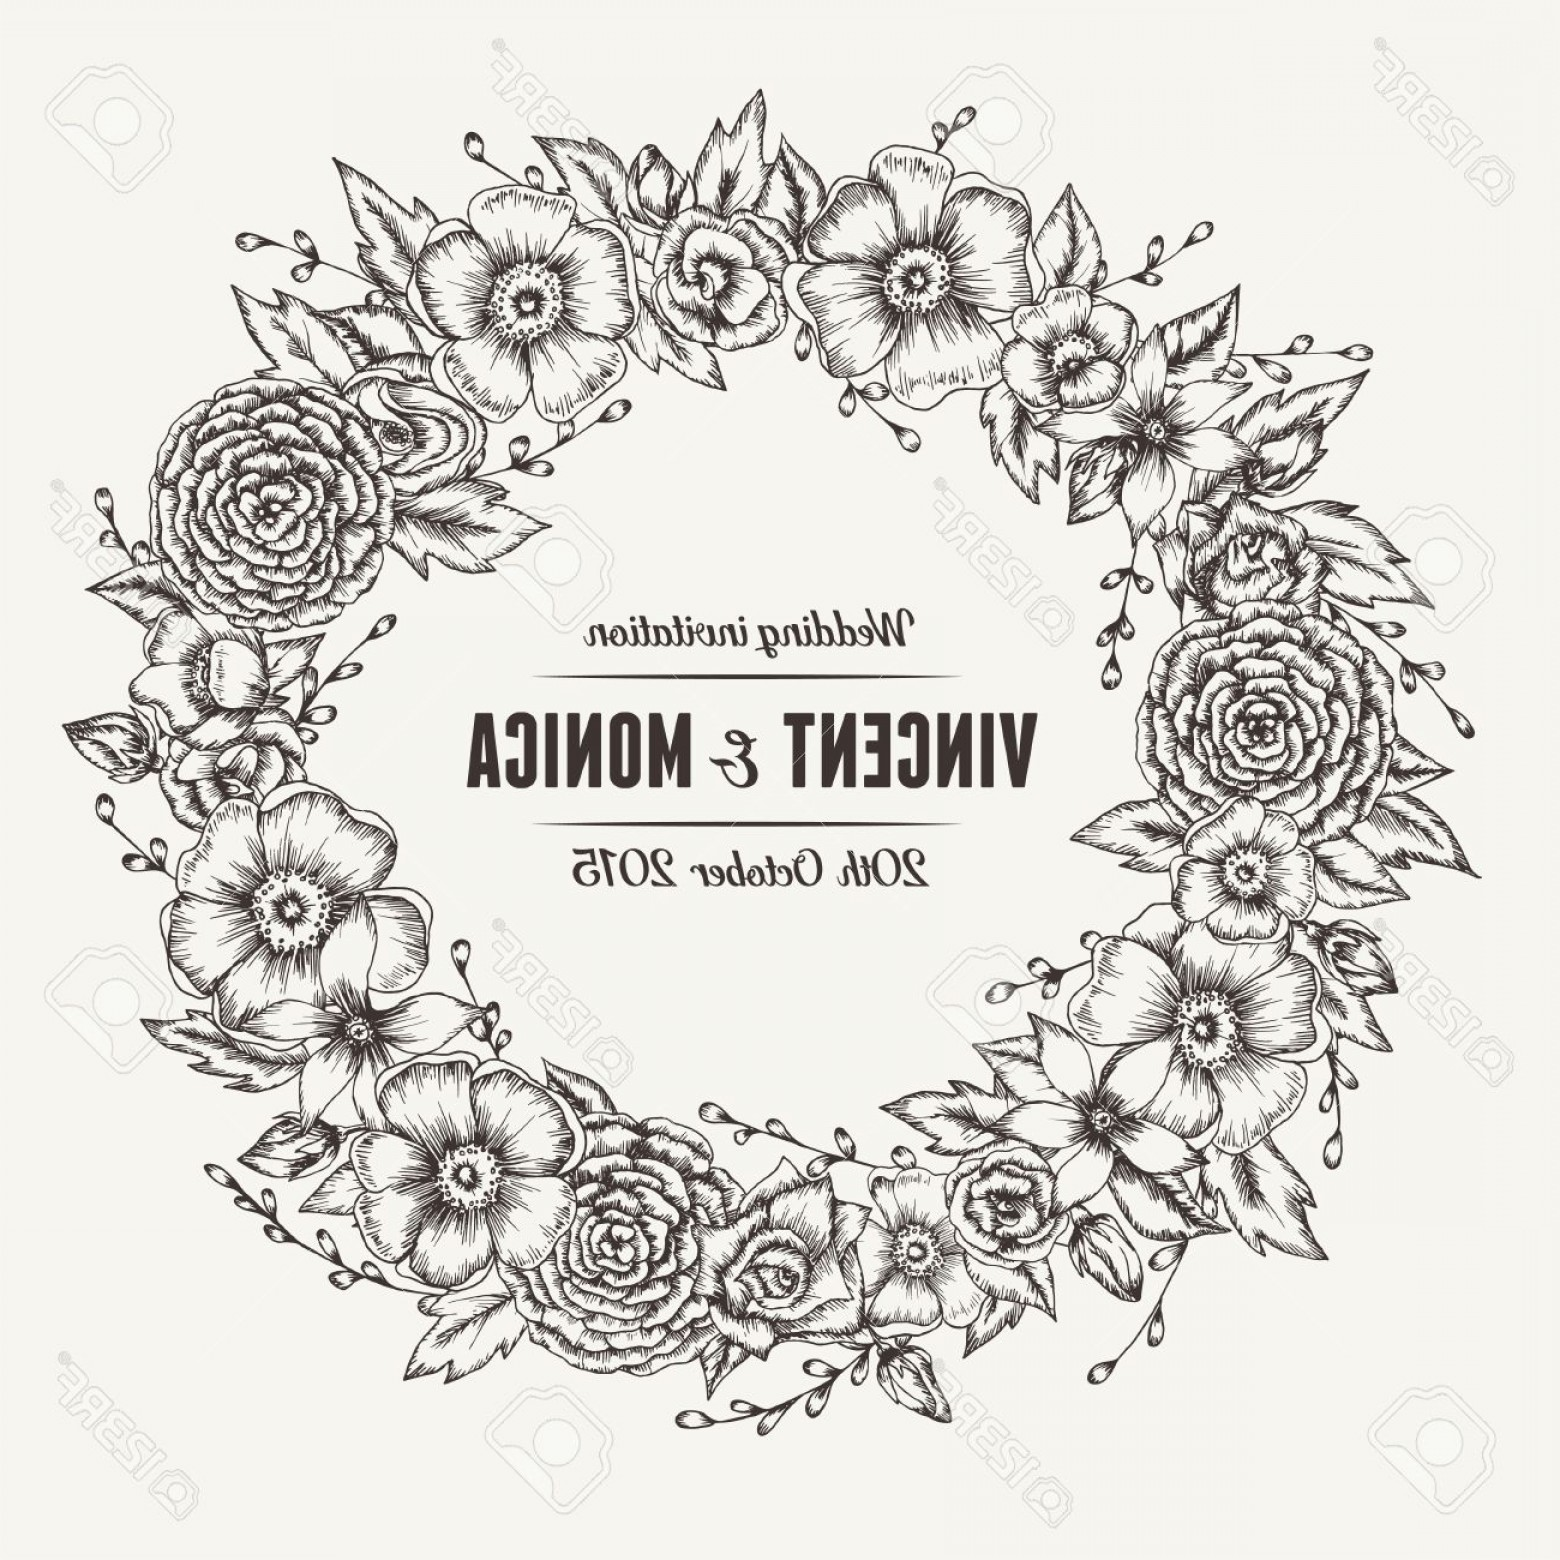 Rustic Wedding Invitation Vector: Photostock Vector Vector Vintage Floral Wedding Invitation Hand Drawn Flower Wreath